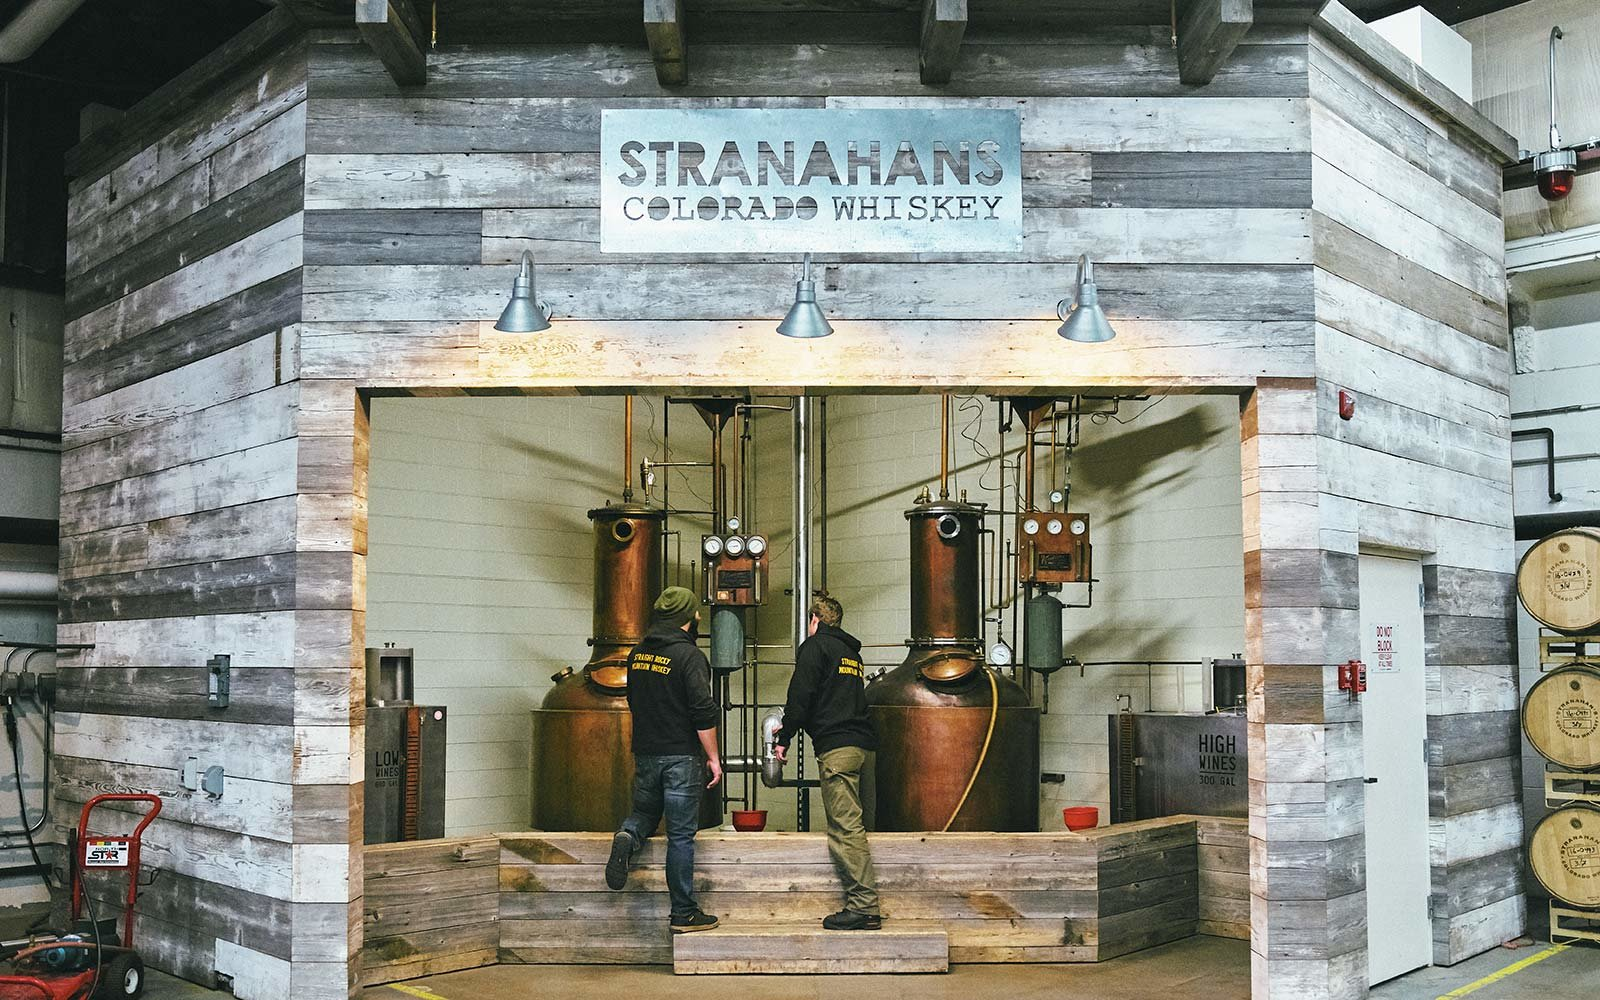 3. Stranahan's Colorado Whiskey,